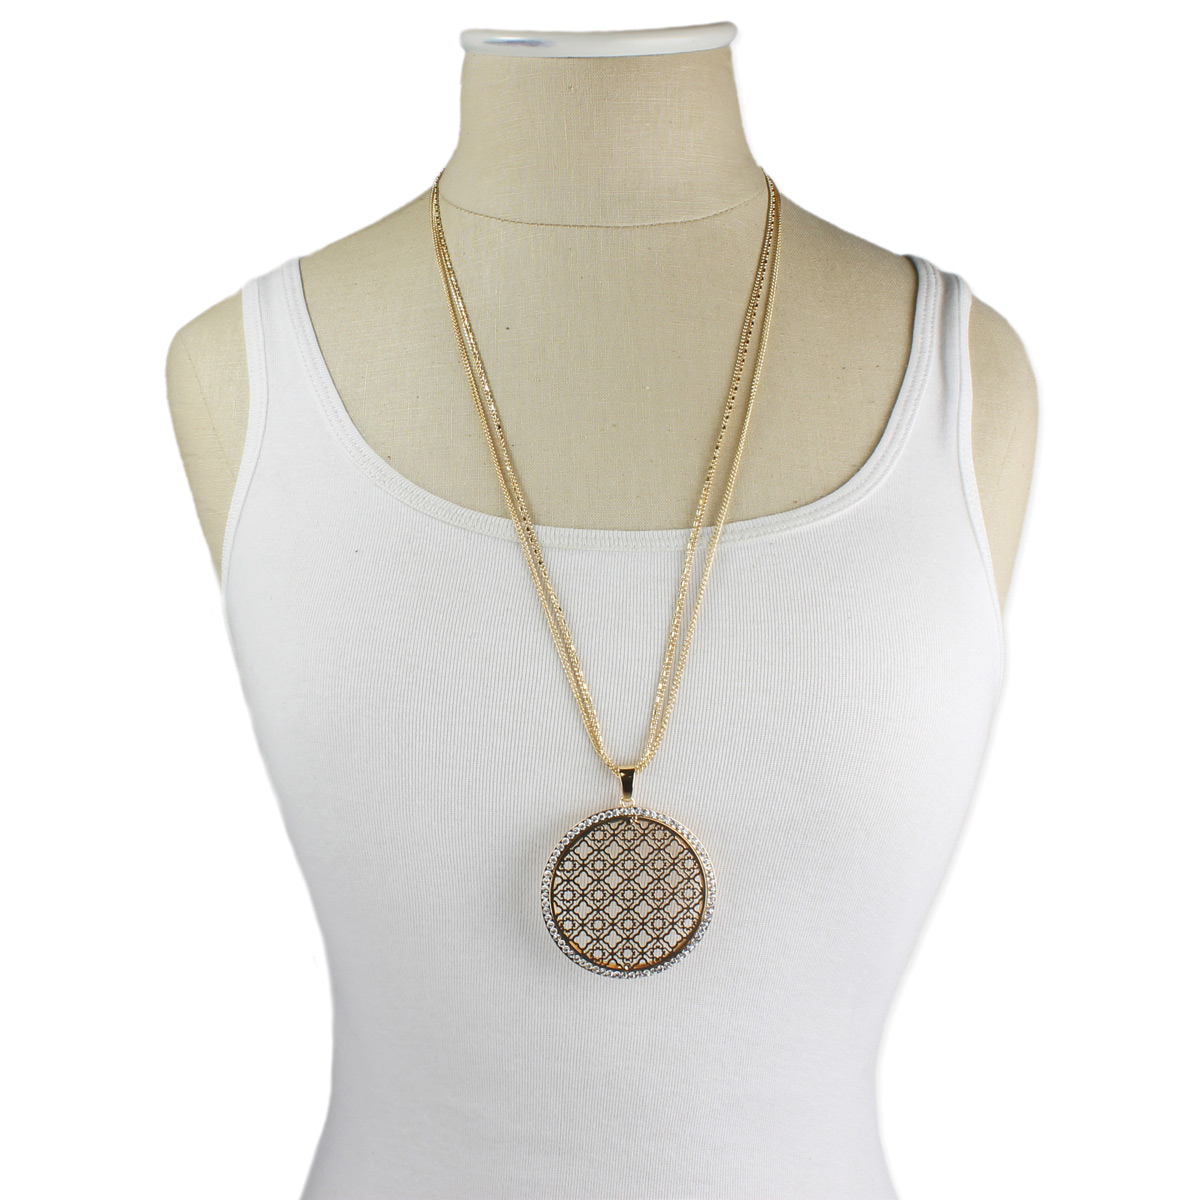 Round gold filigree pendant long necklace long gold cutout pendant necklace on dress form aloadofball Images